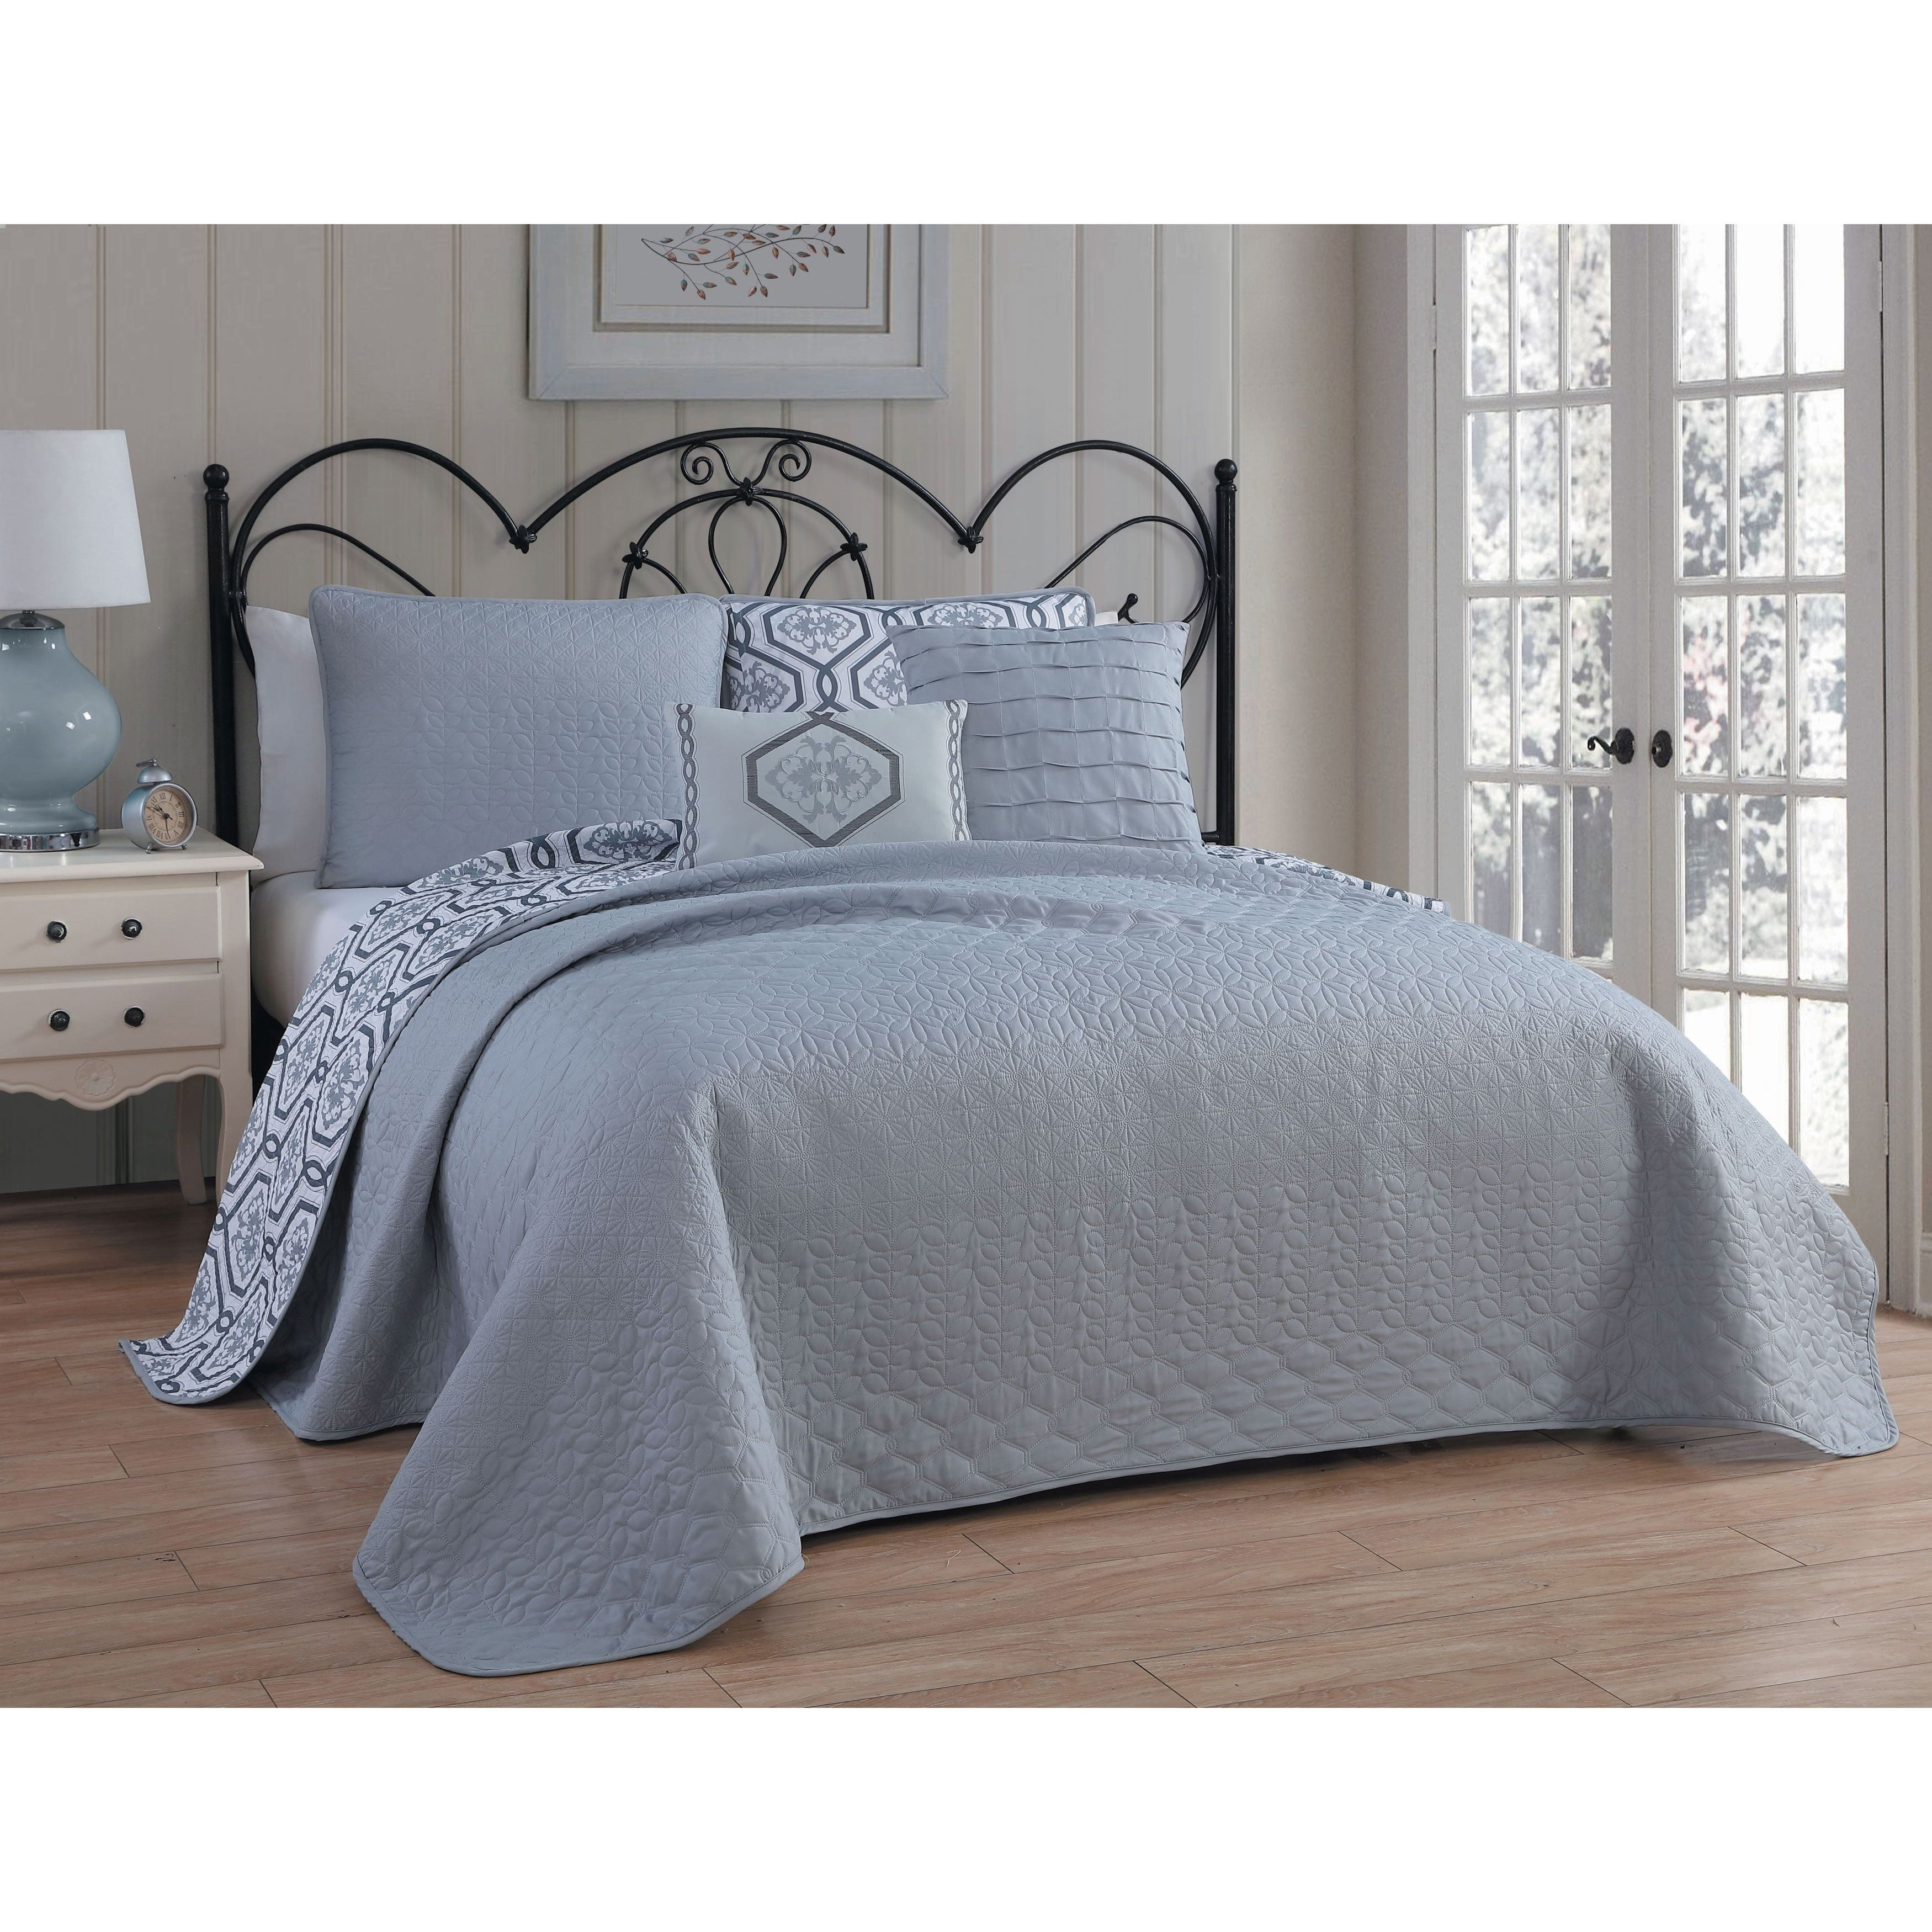 free product on comforter amy of sia seafoam bedding bath shipping sea set overstock bed com glass orders